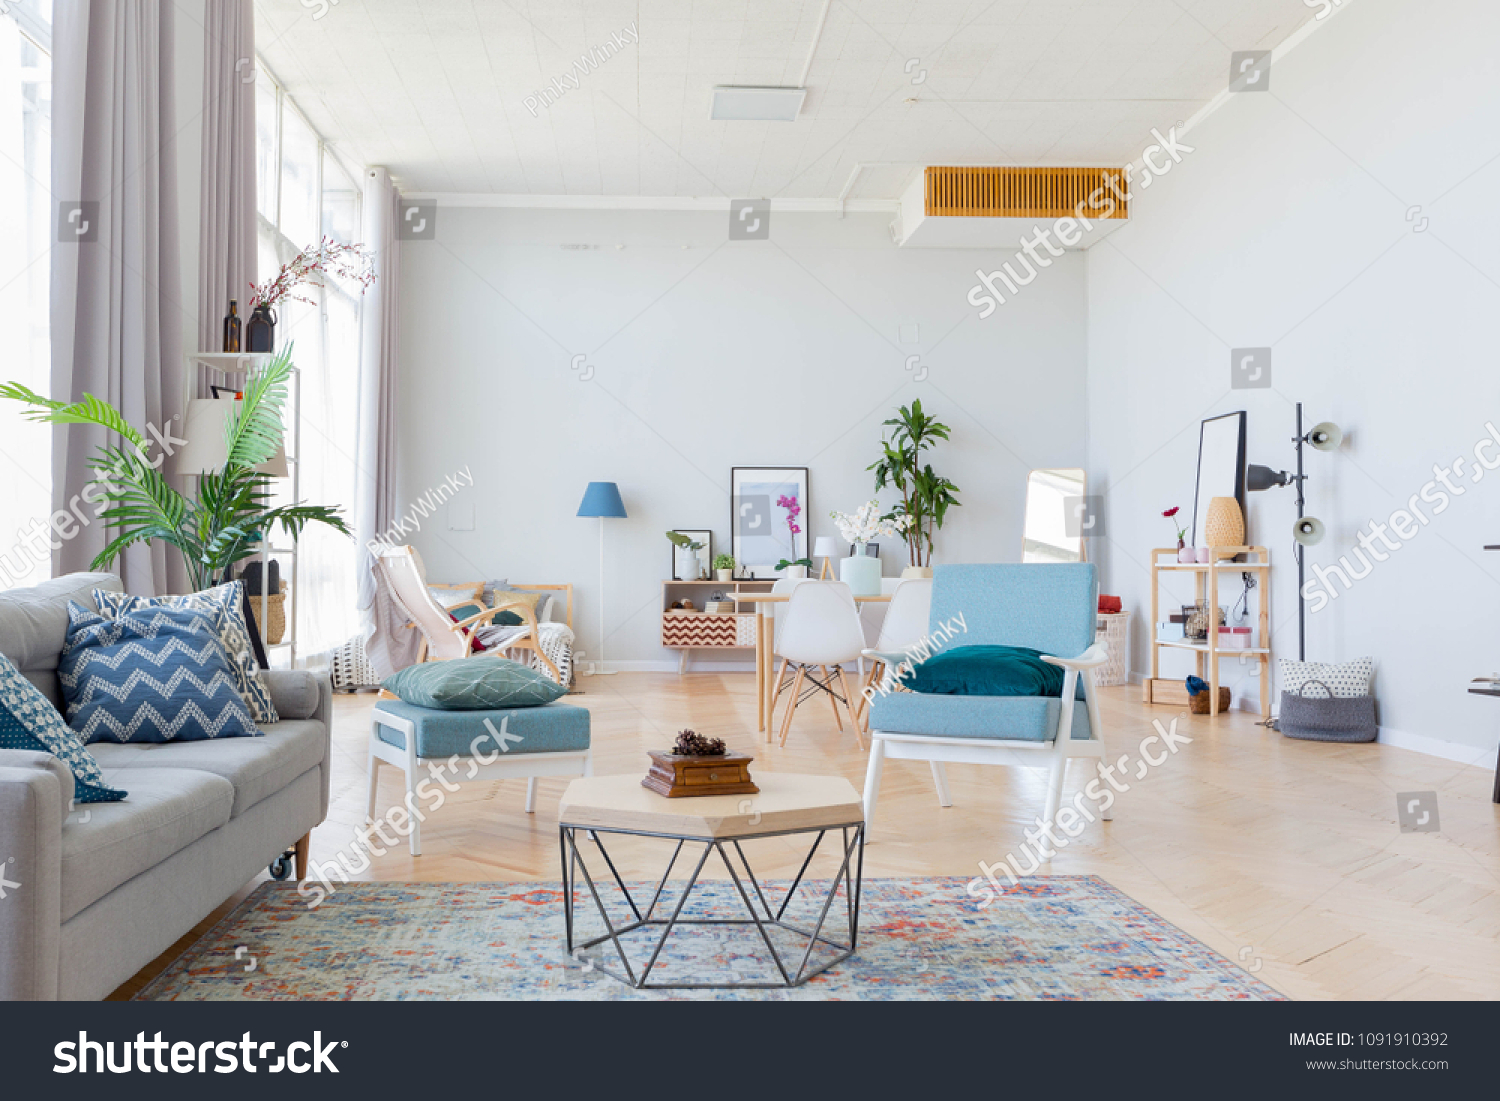 The interior design of the studio apartment in scandinavian style a spacious huge room in